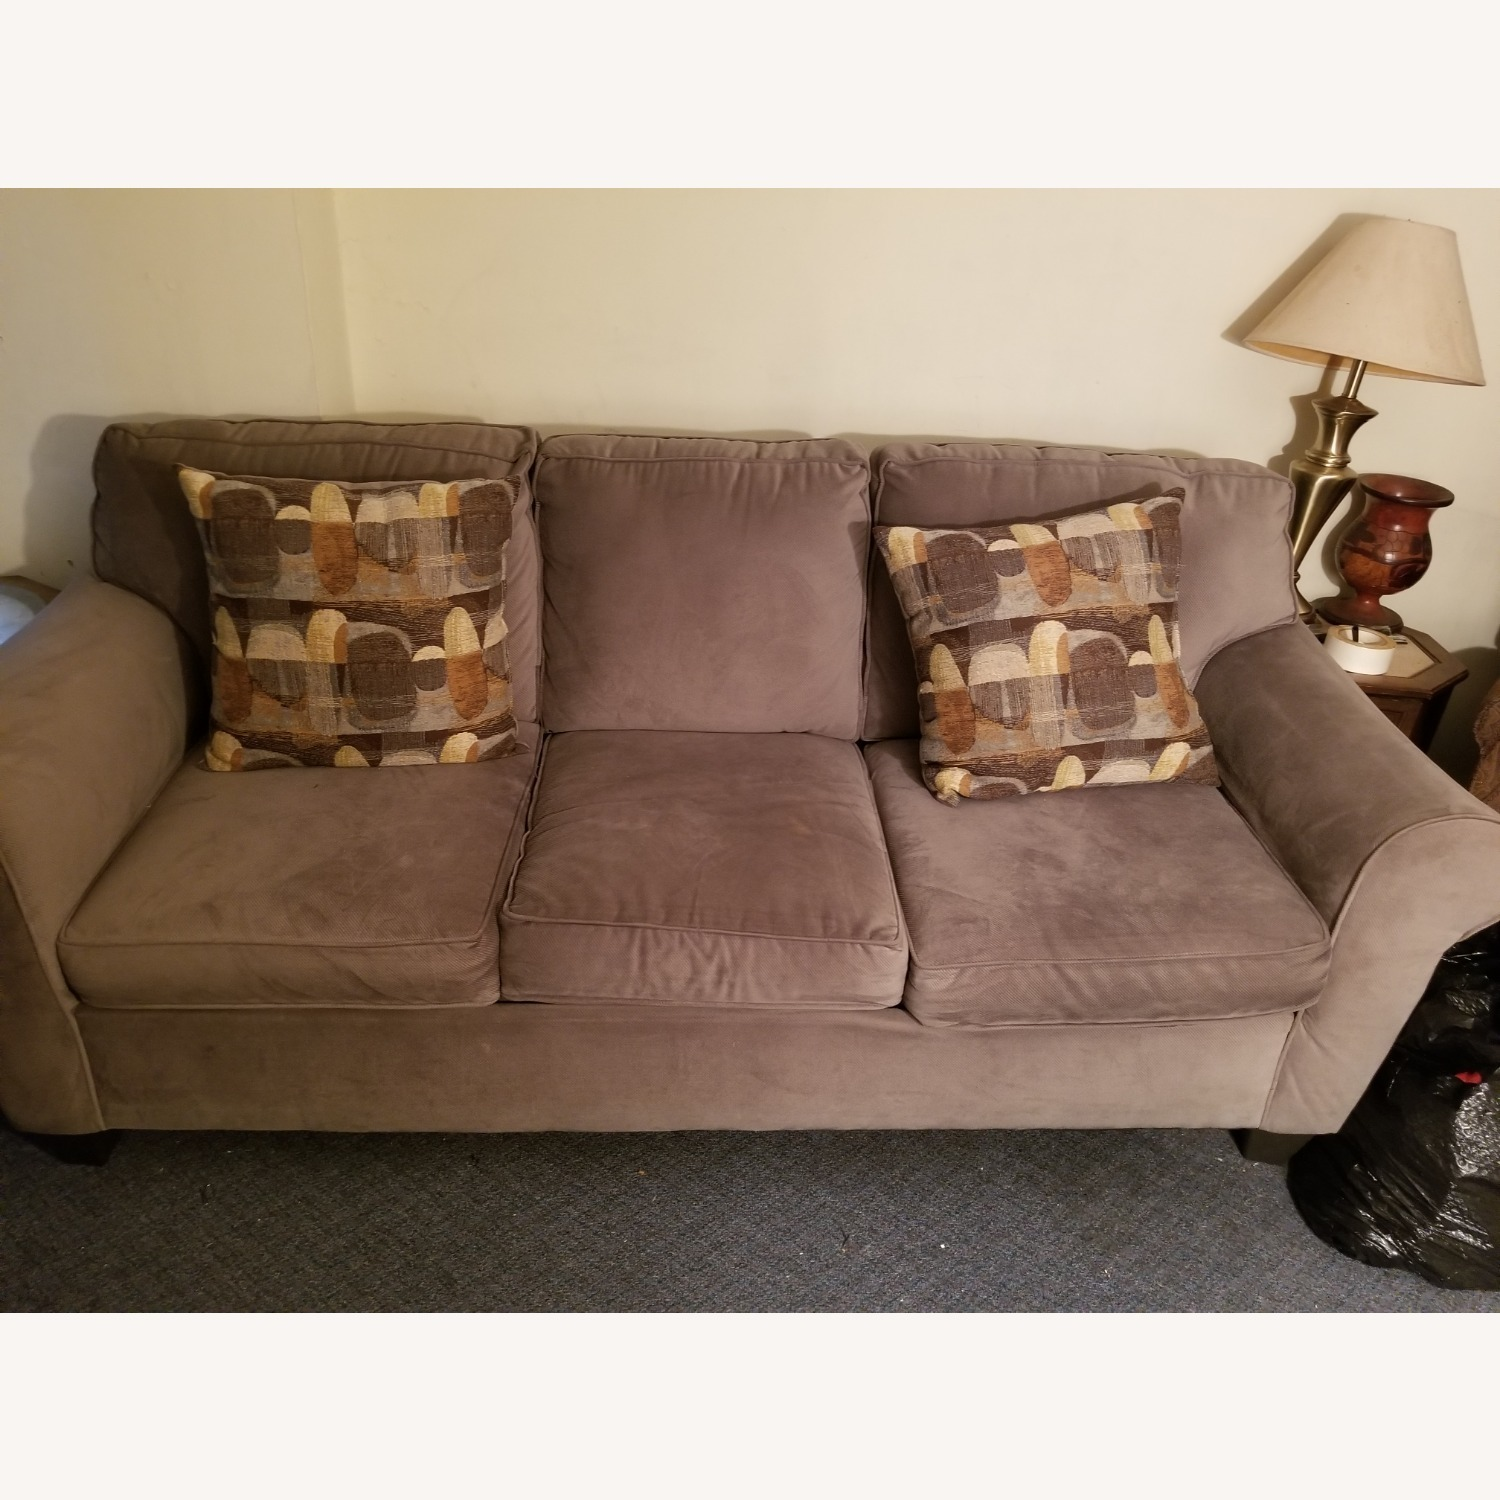 Raymour & Flanigan Green Couch with Reversible Pillows - image-1